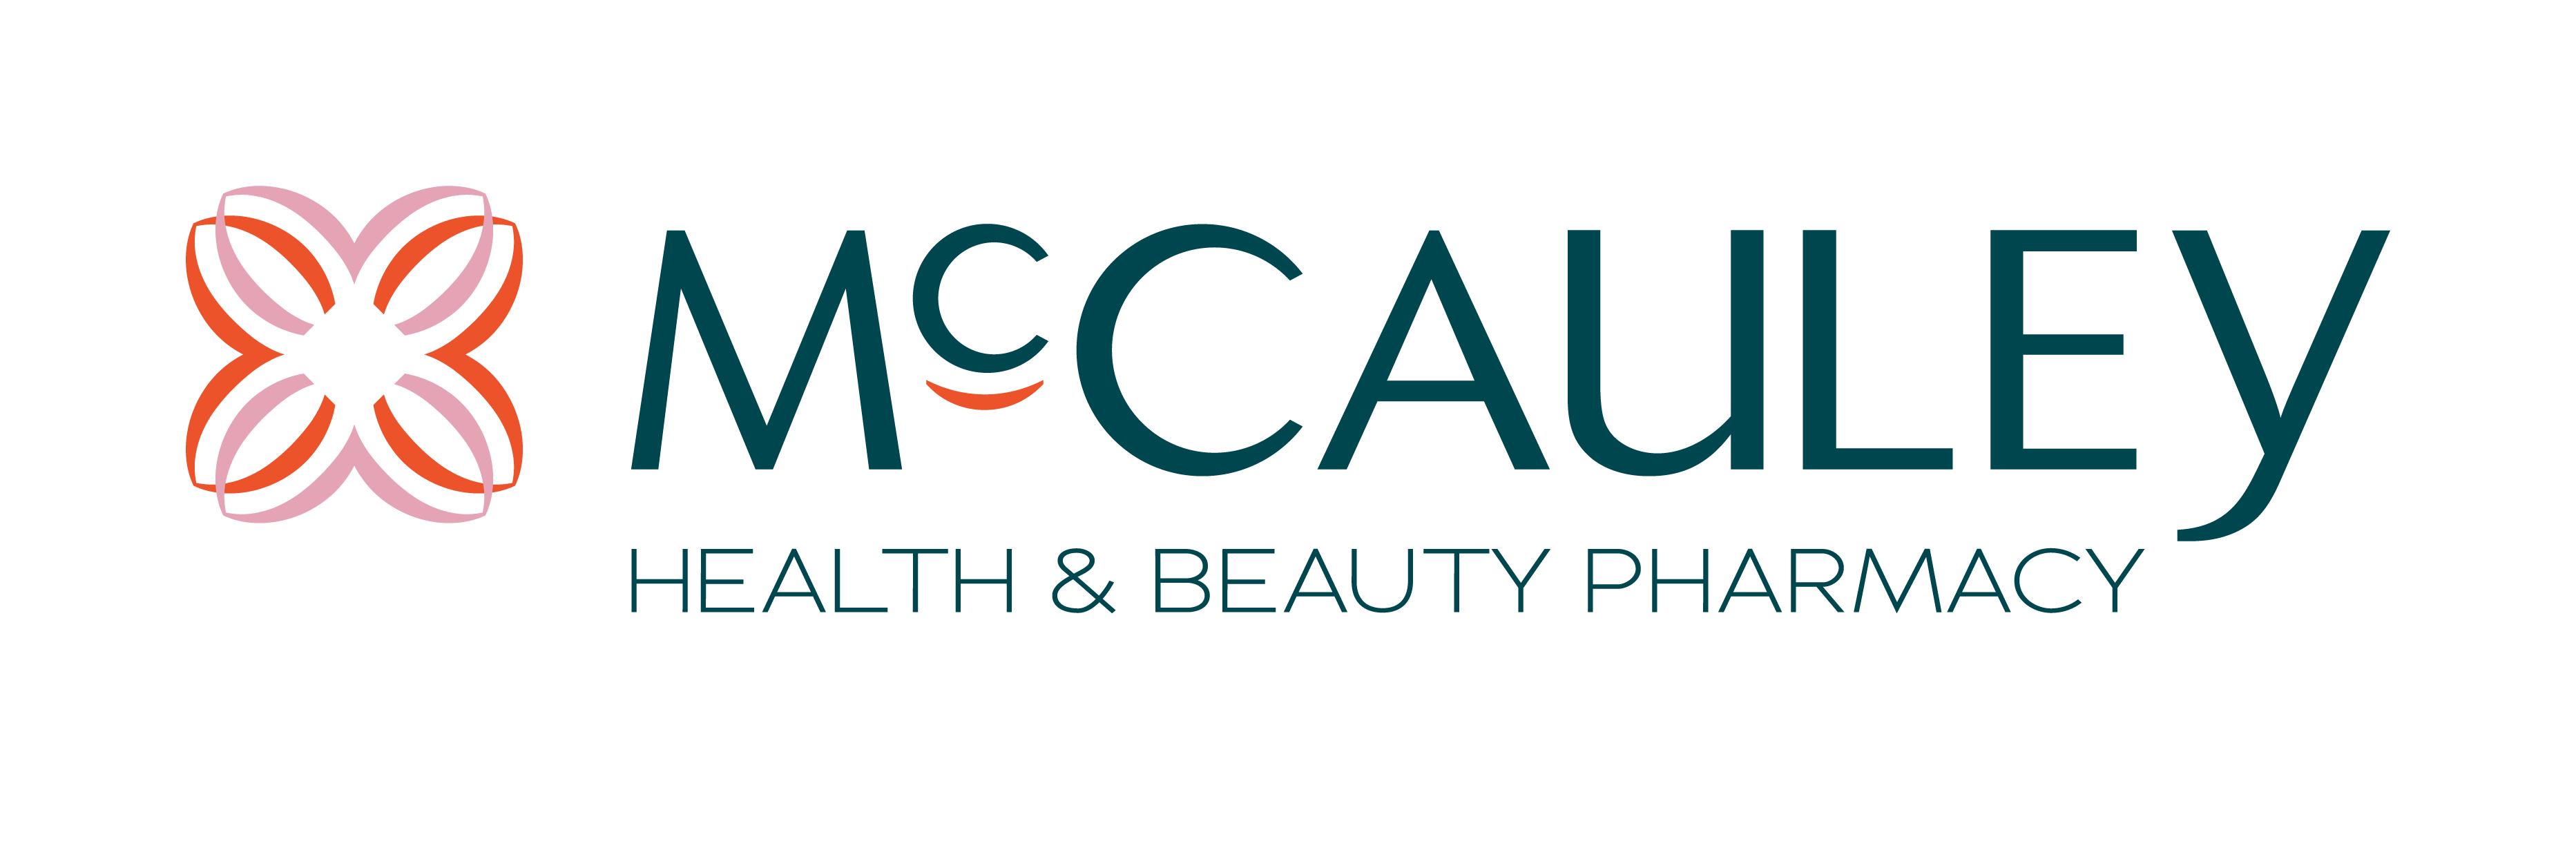 McCauley Pharmacy Blog